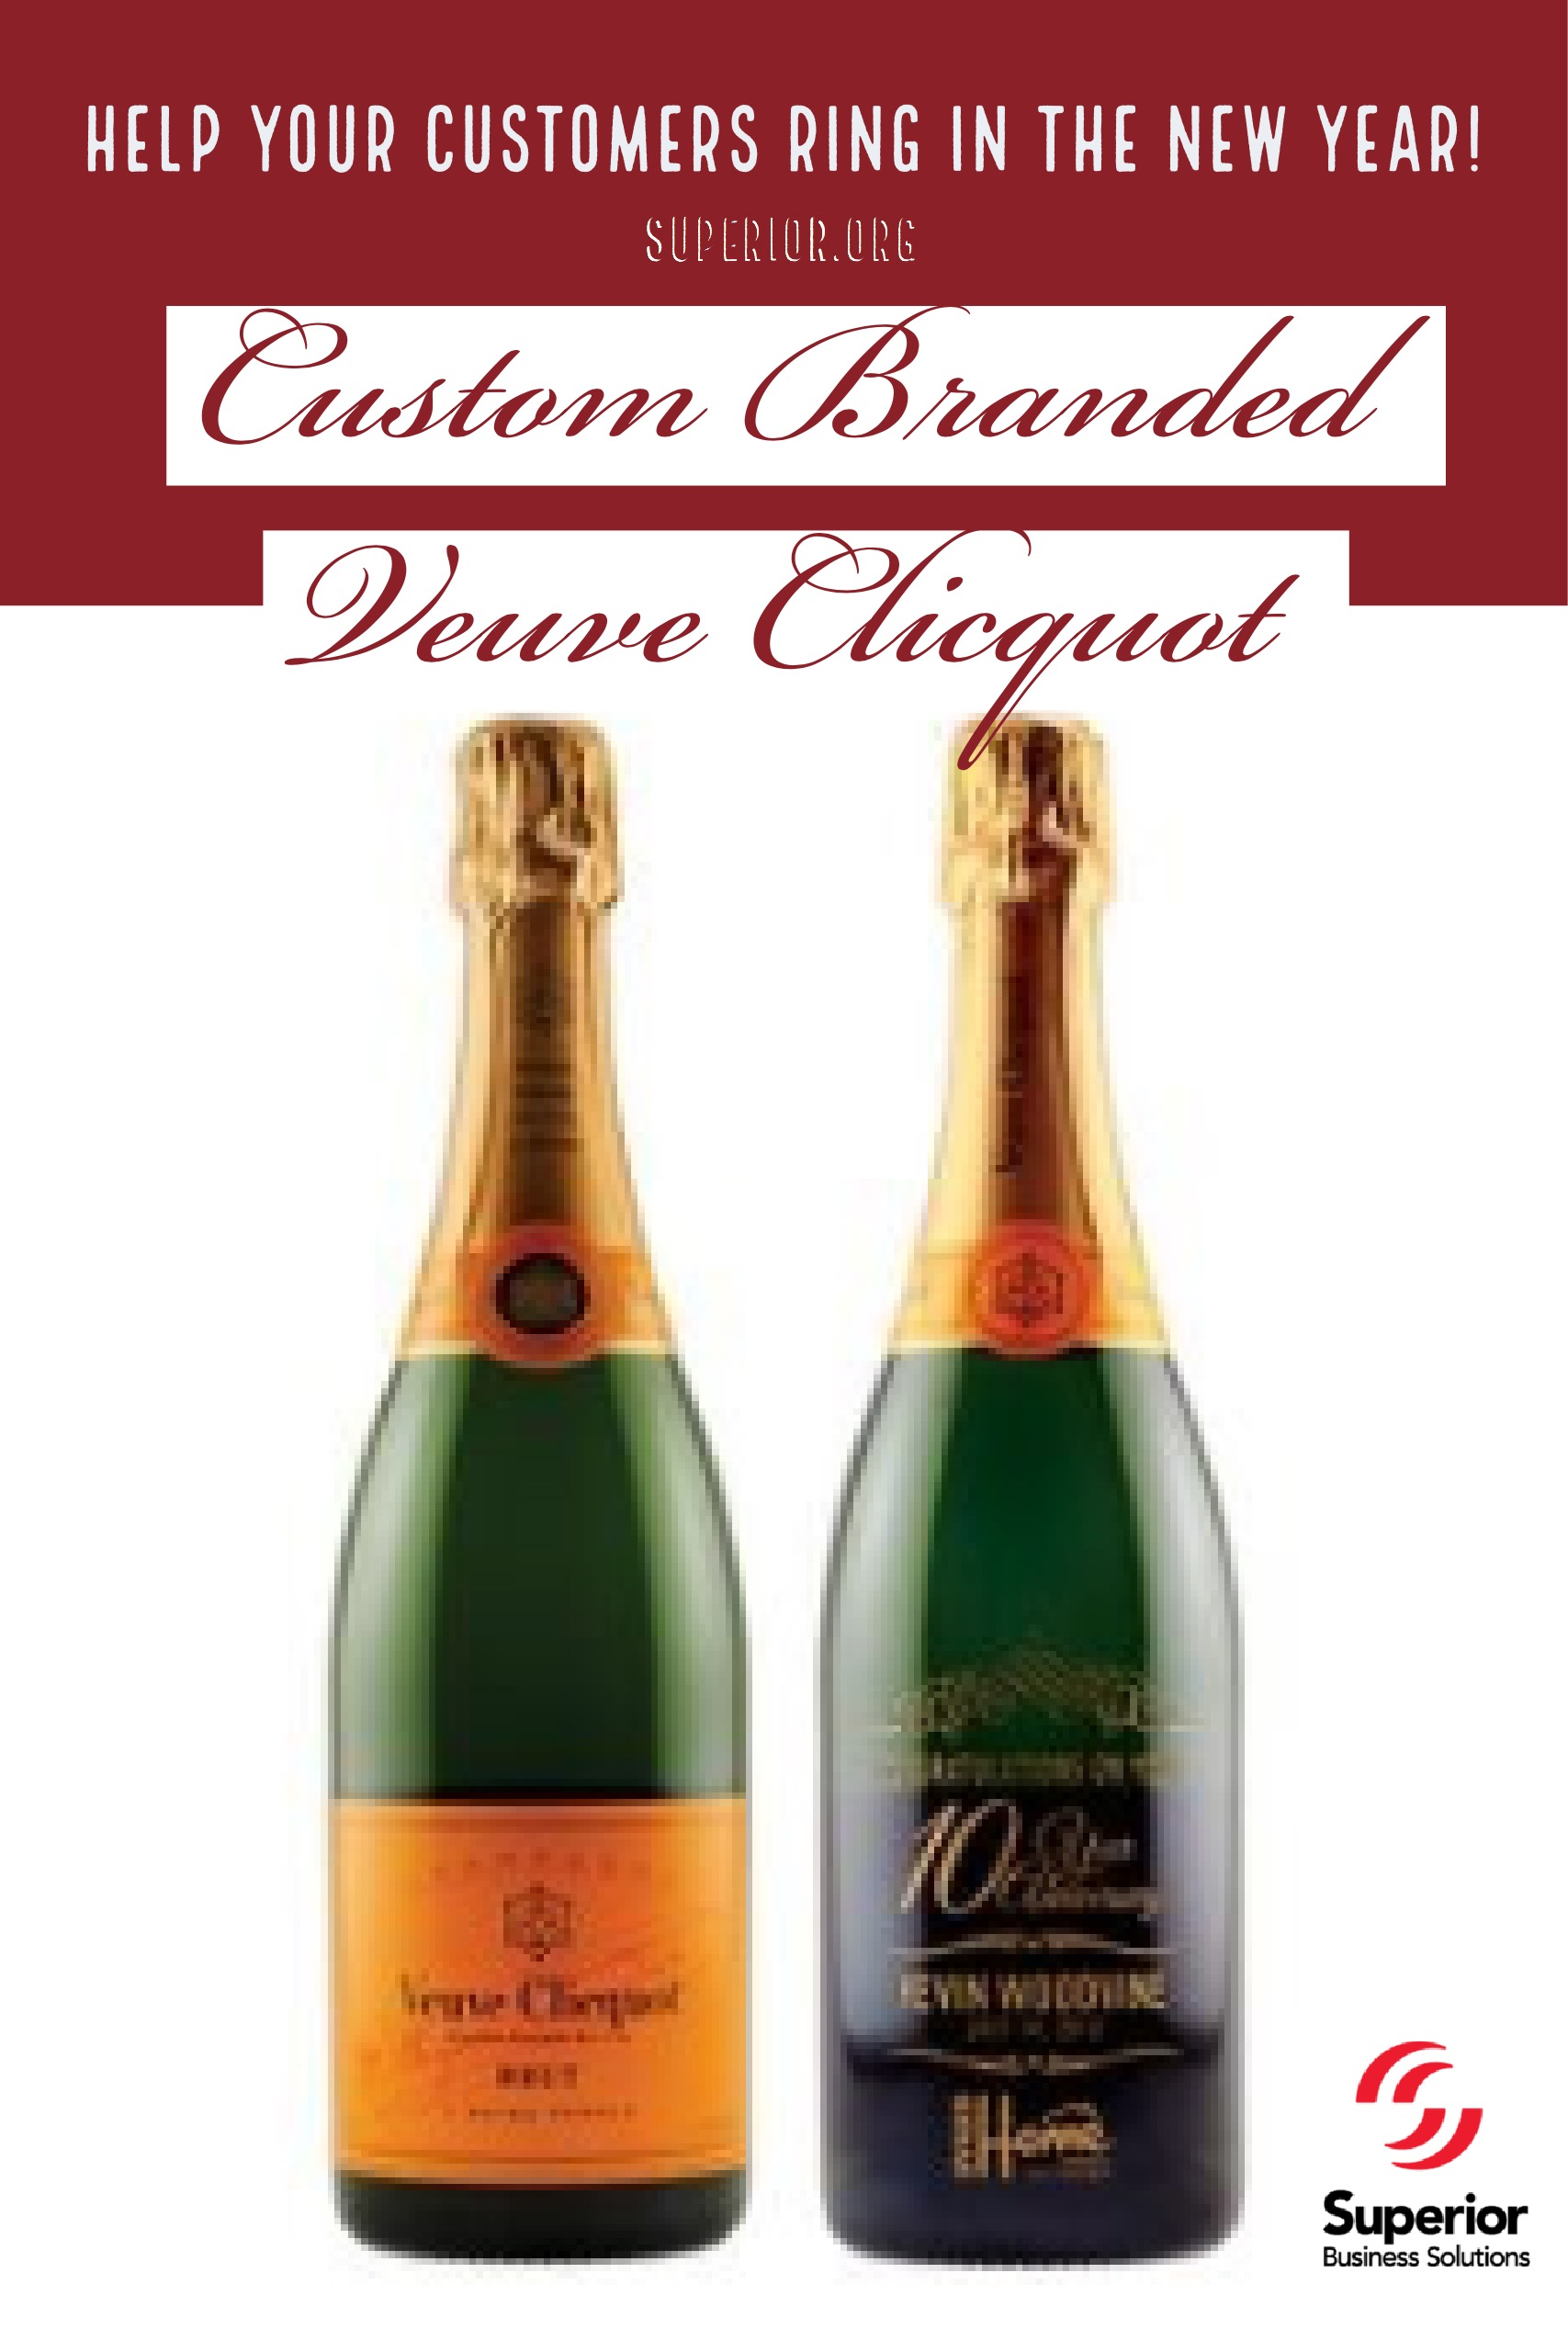 Ring in the New Year with Your Customers and Custom Branded Products Like Veuve Clicquot Champagne